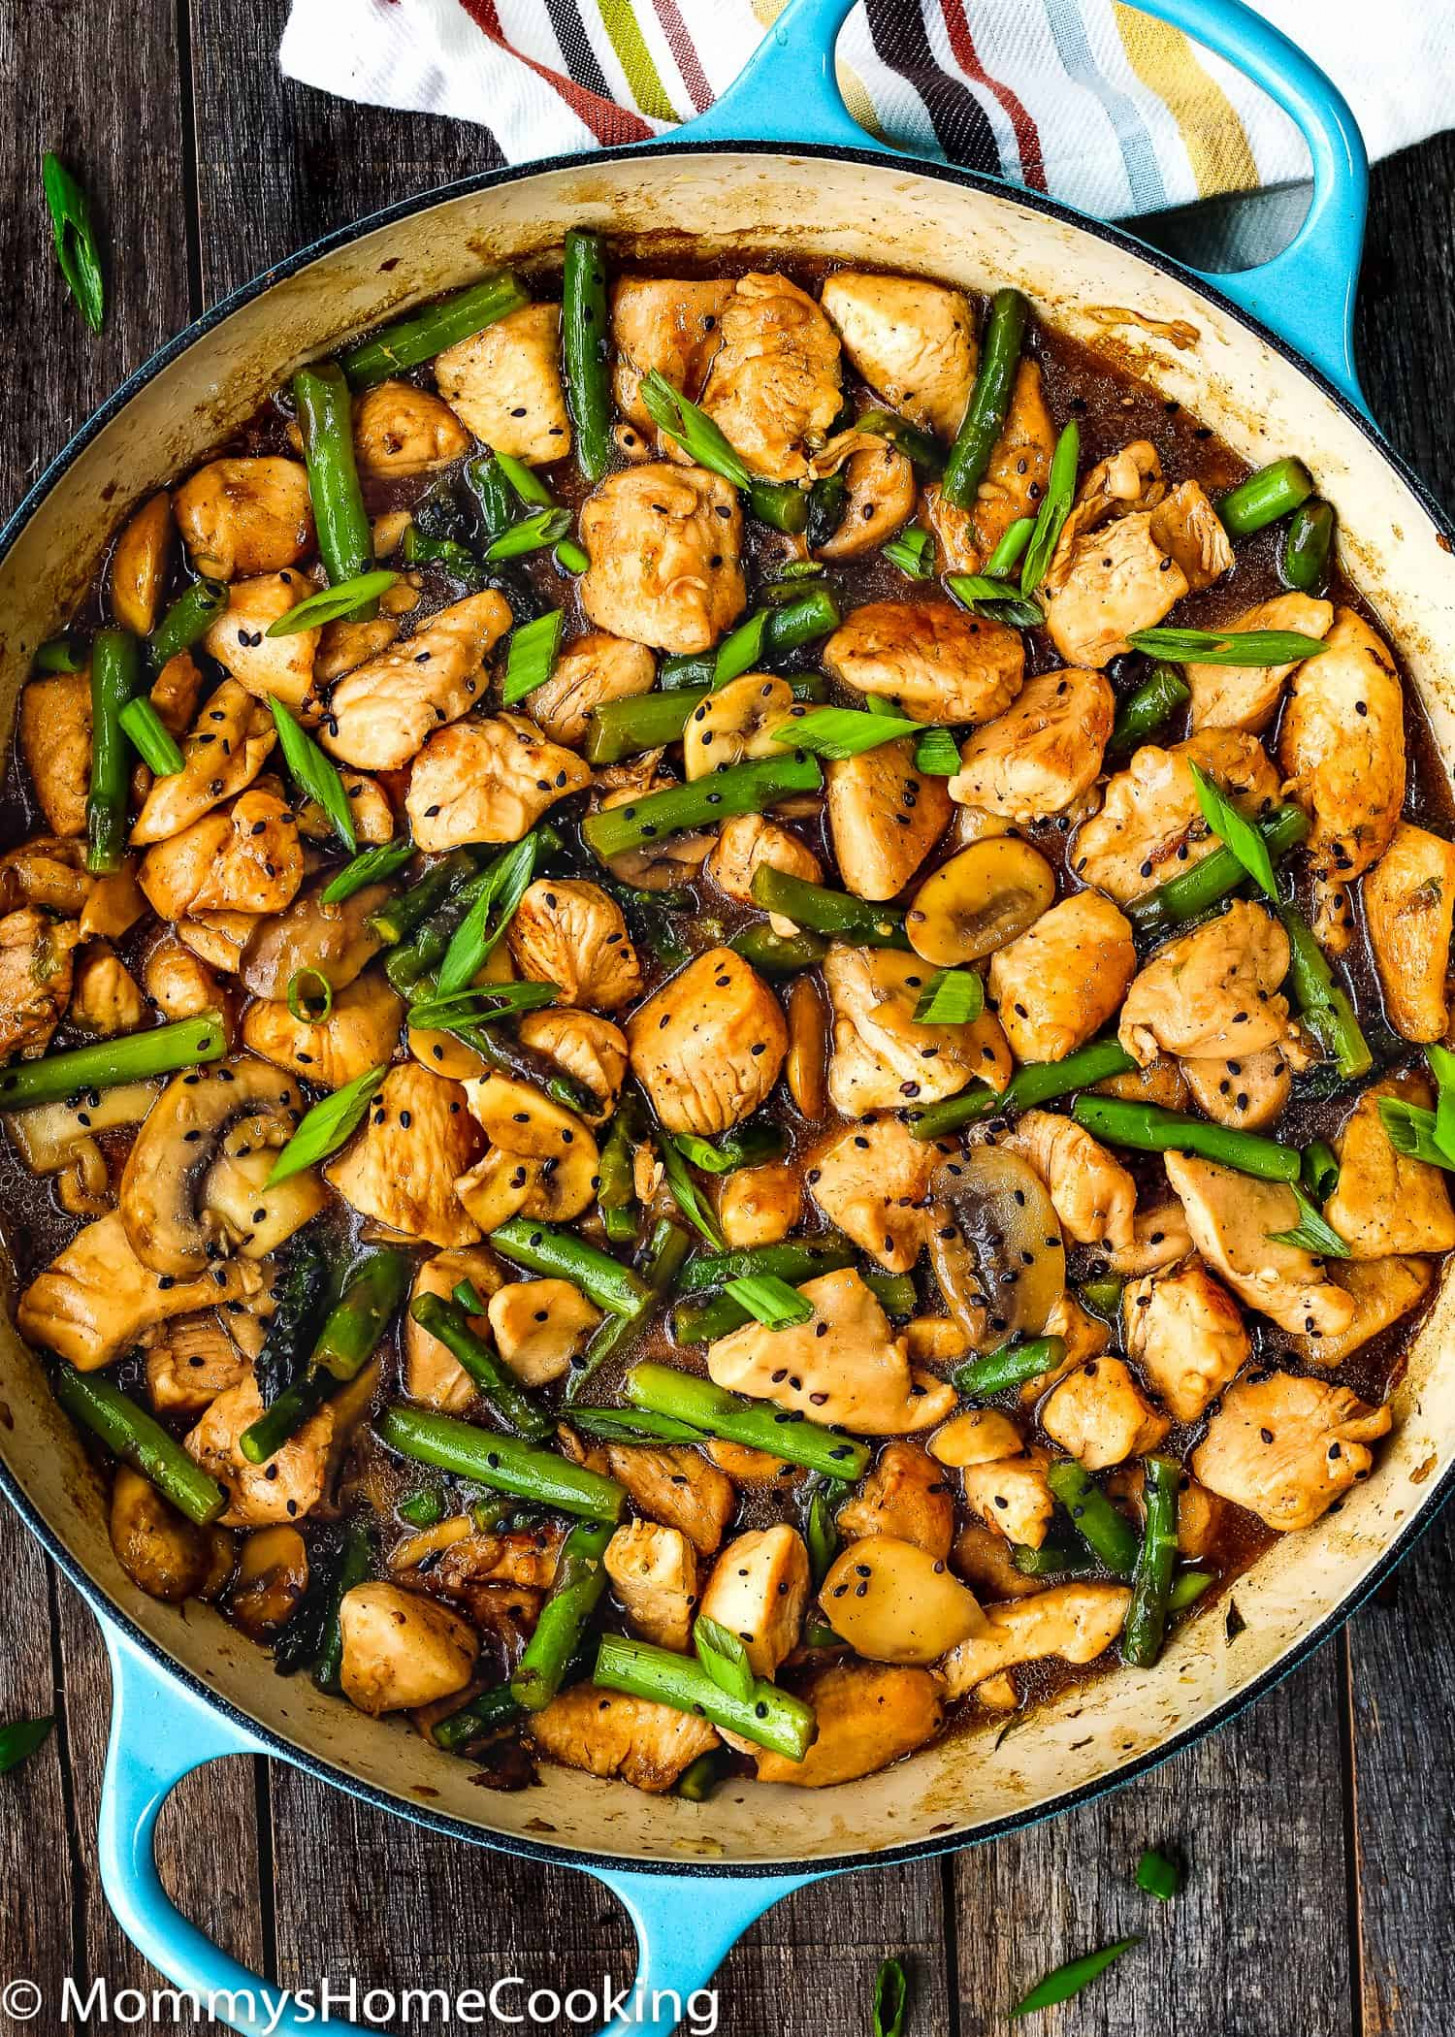 Easy Healthy Chicken and Asparagus Skillet - recipes to make at home for dinner